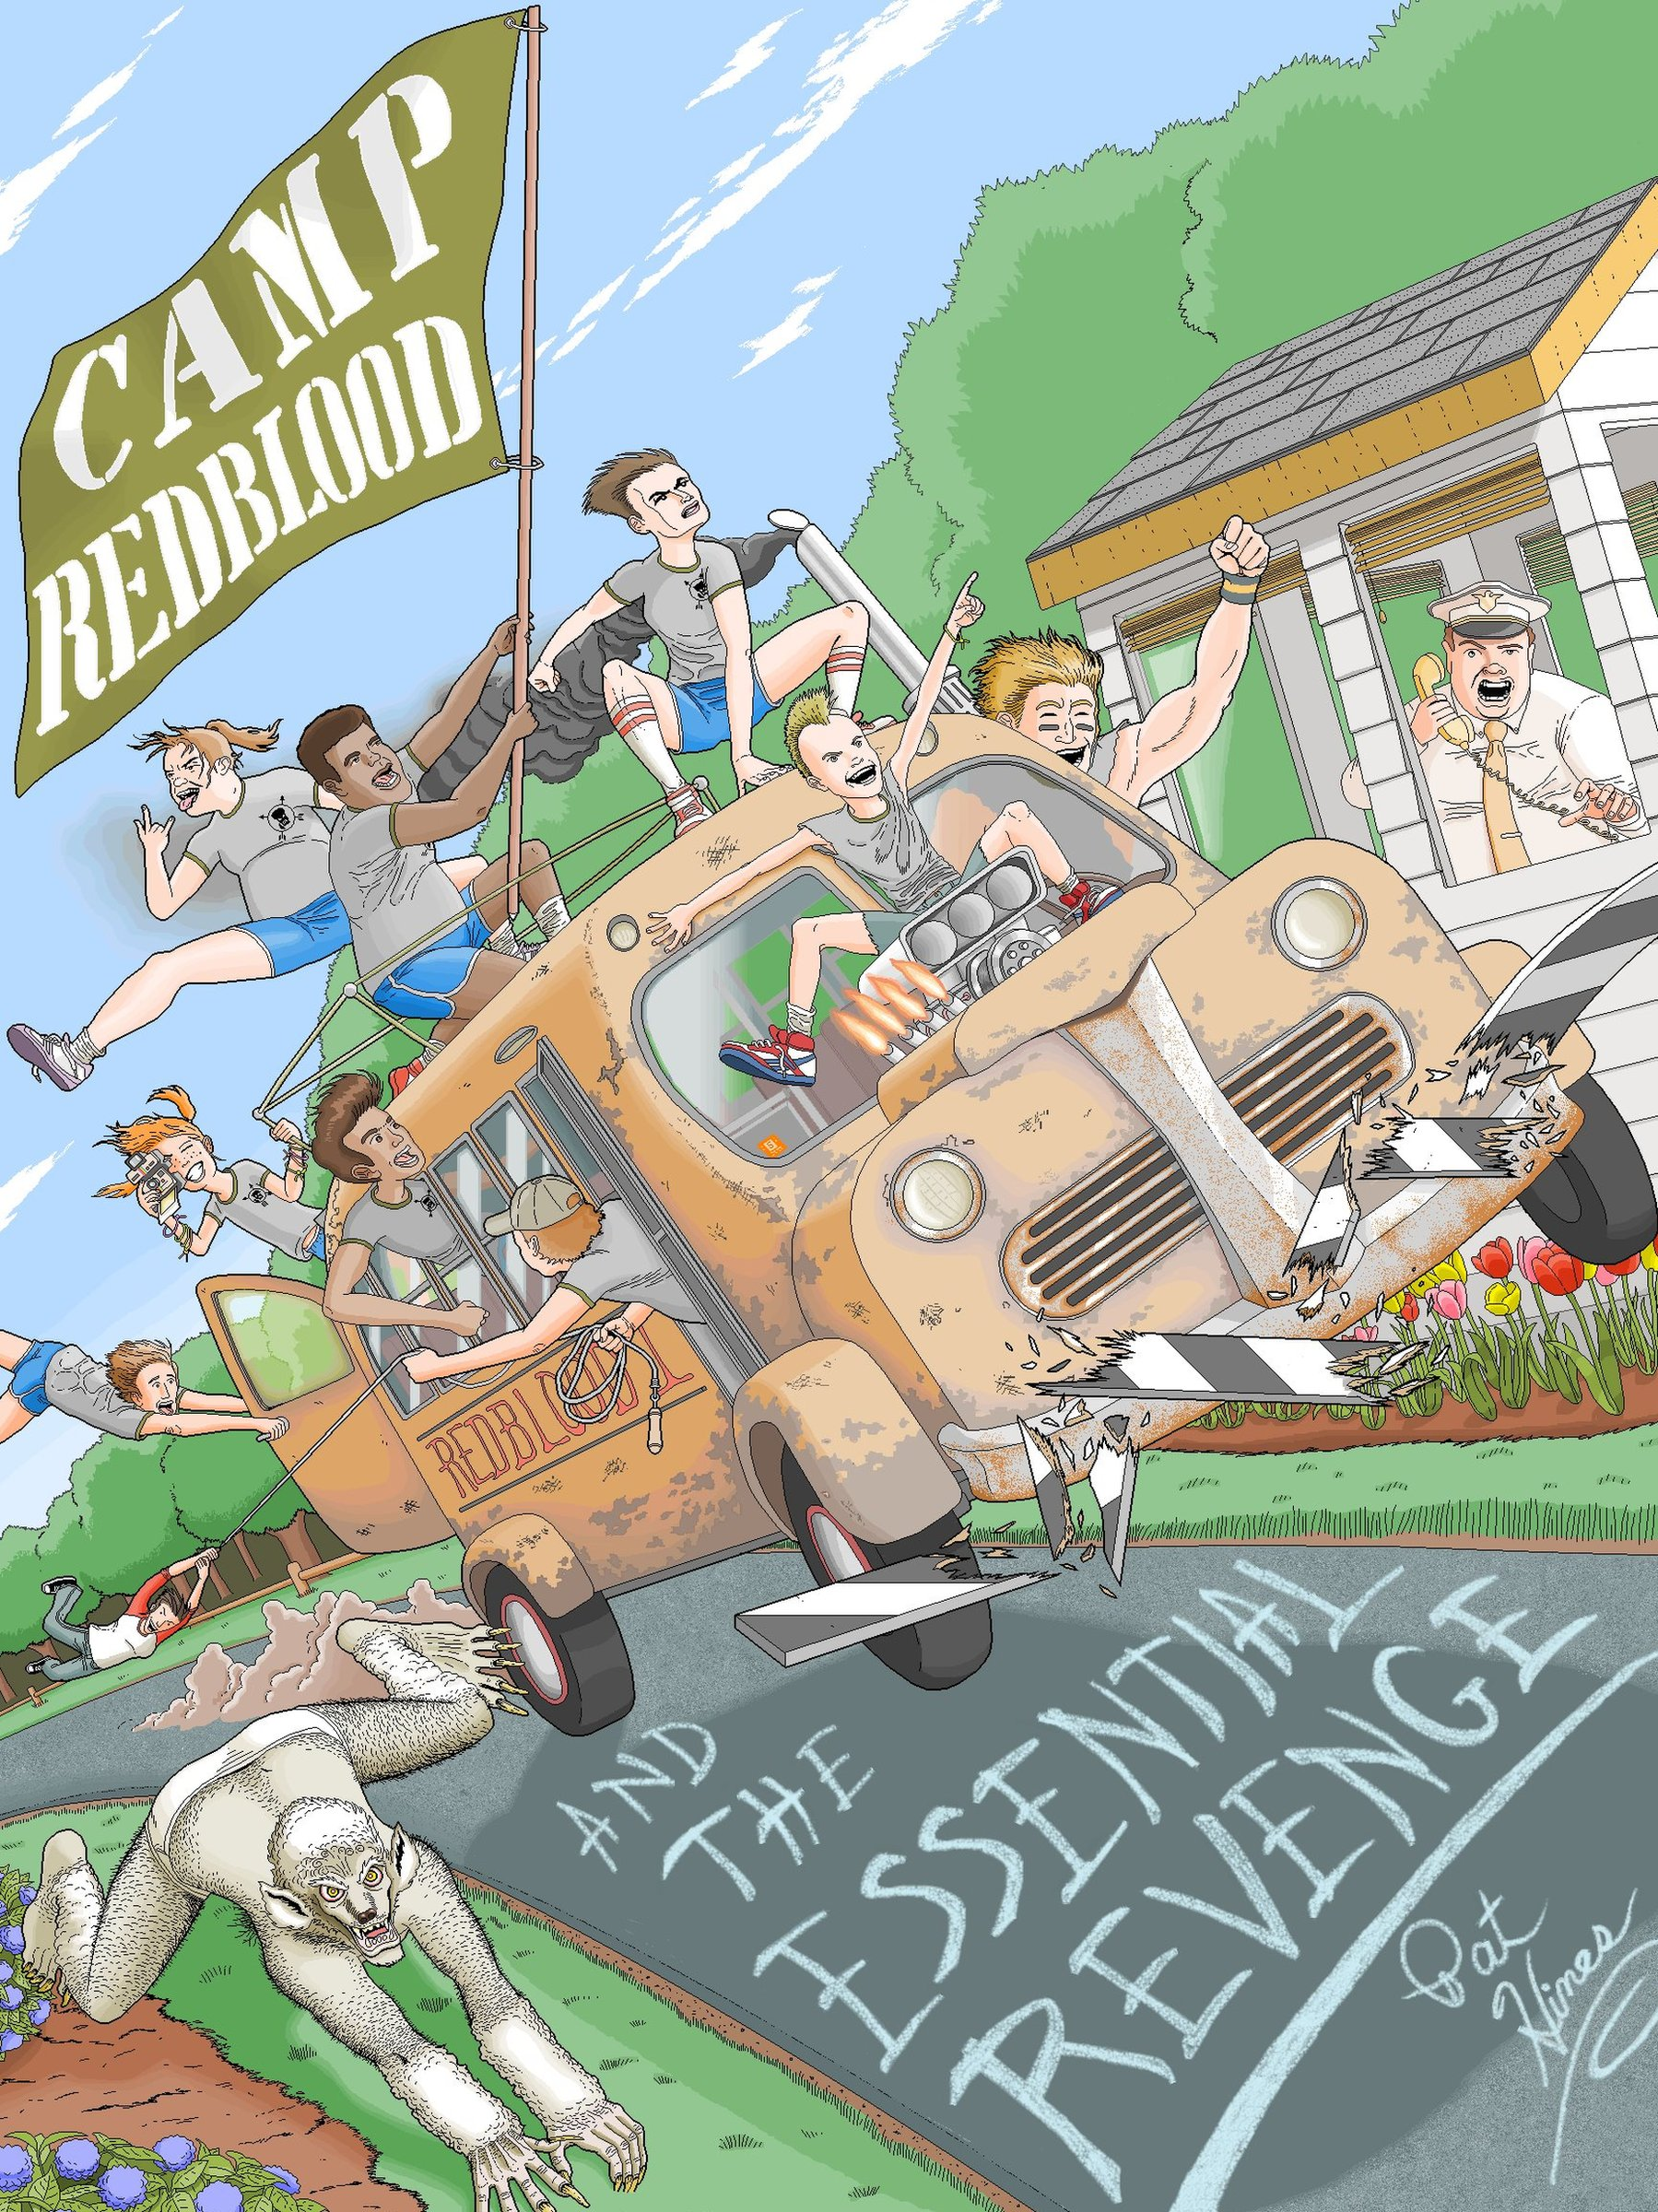 Cover of the e-book Camp Redblood and the Essential Revenge showing a bus driven by rebellious young campers driving through a security checkpoint